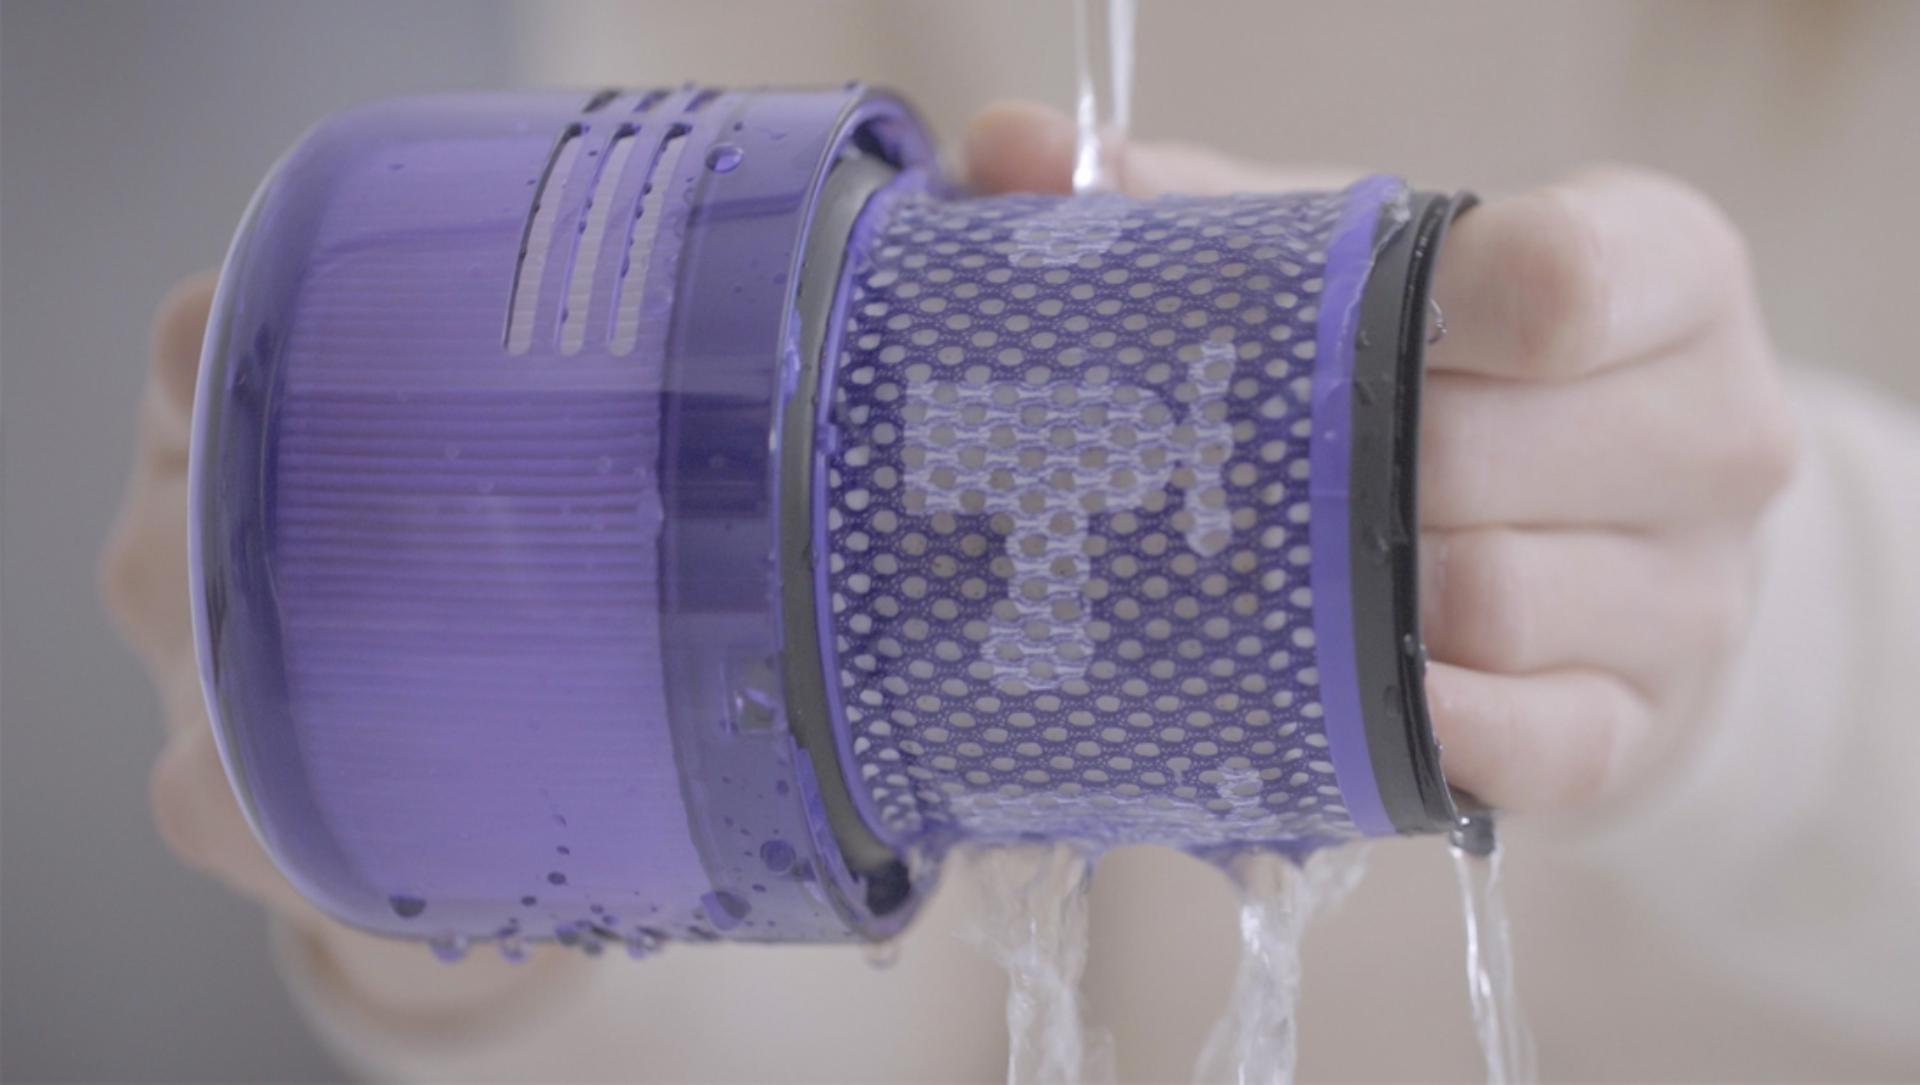 Video about how to wash the filter of your Dyson V11™ vacuum